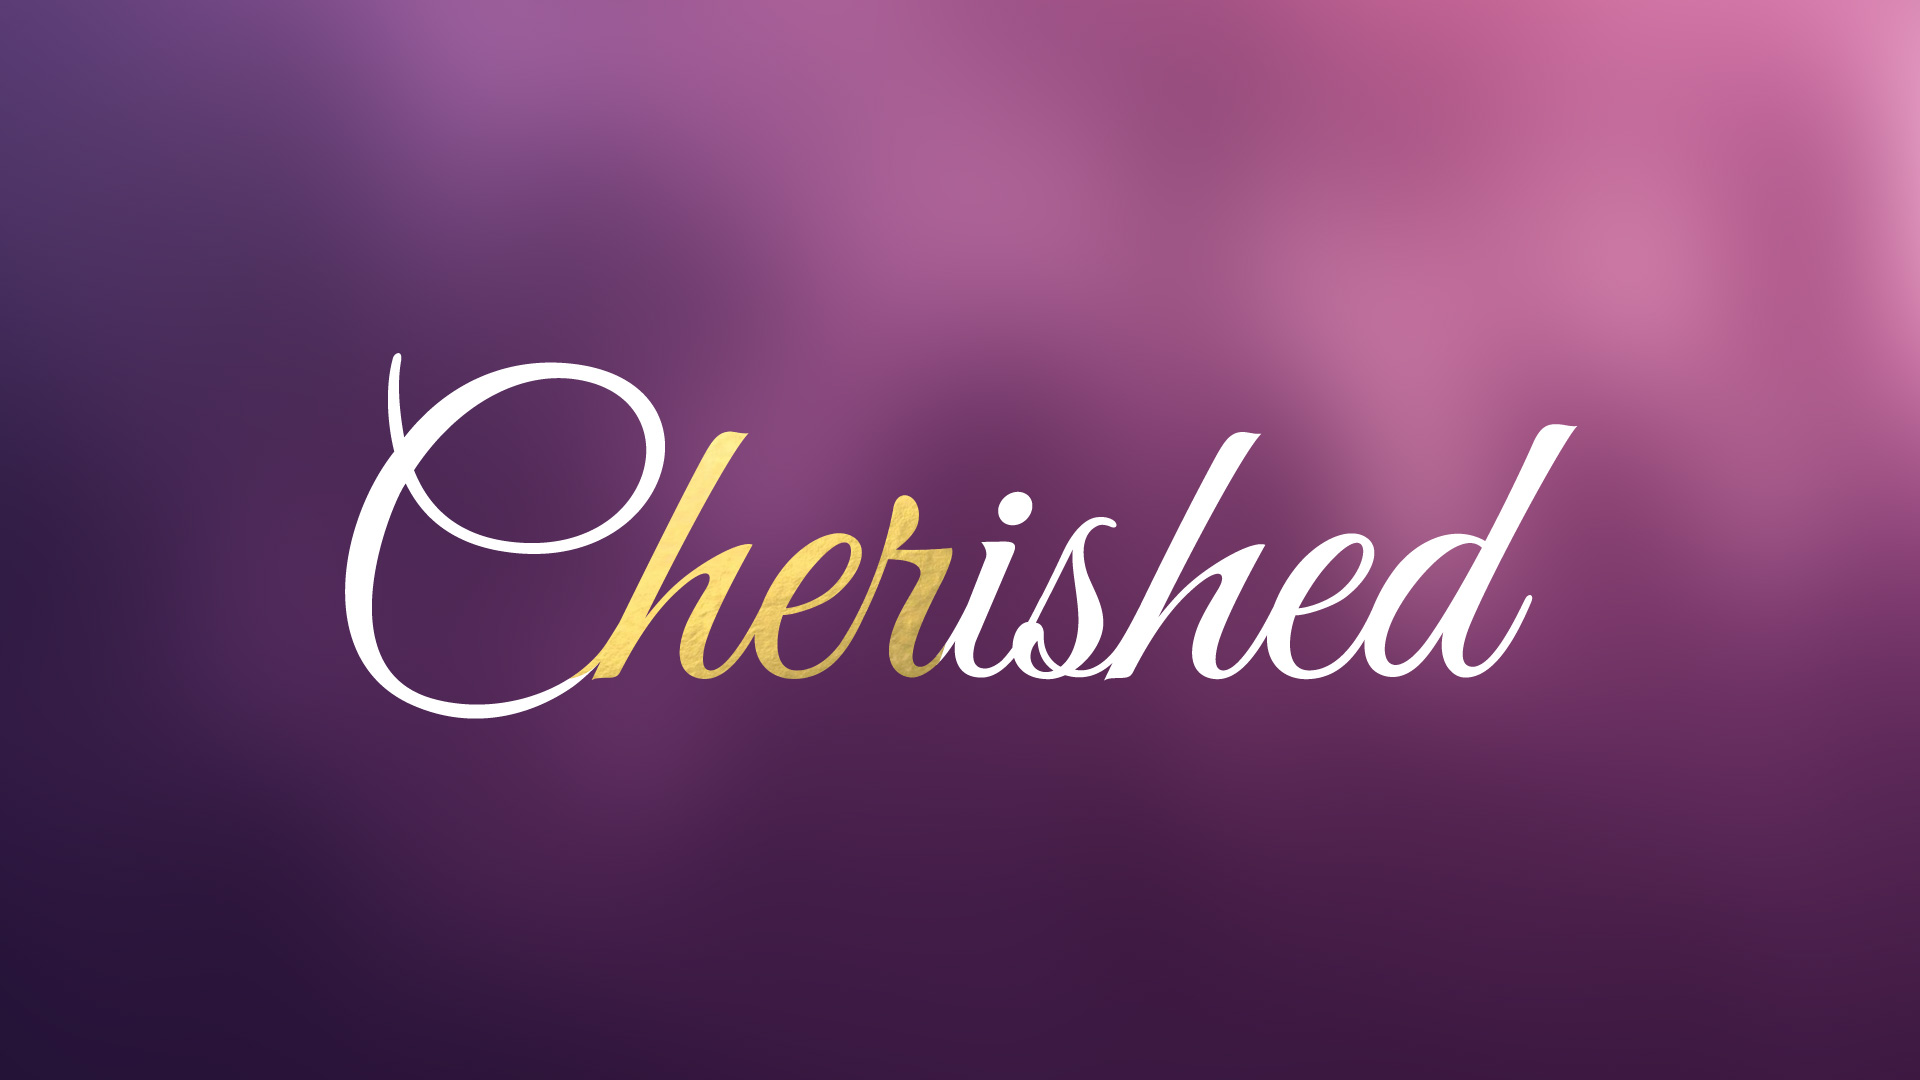 Cherished slide 1920x1080 title